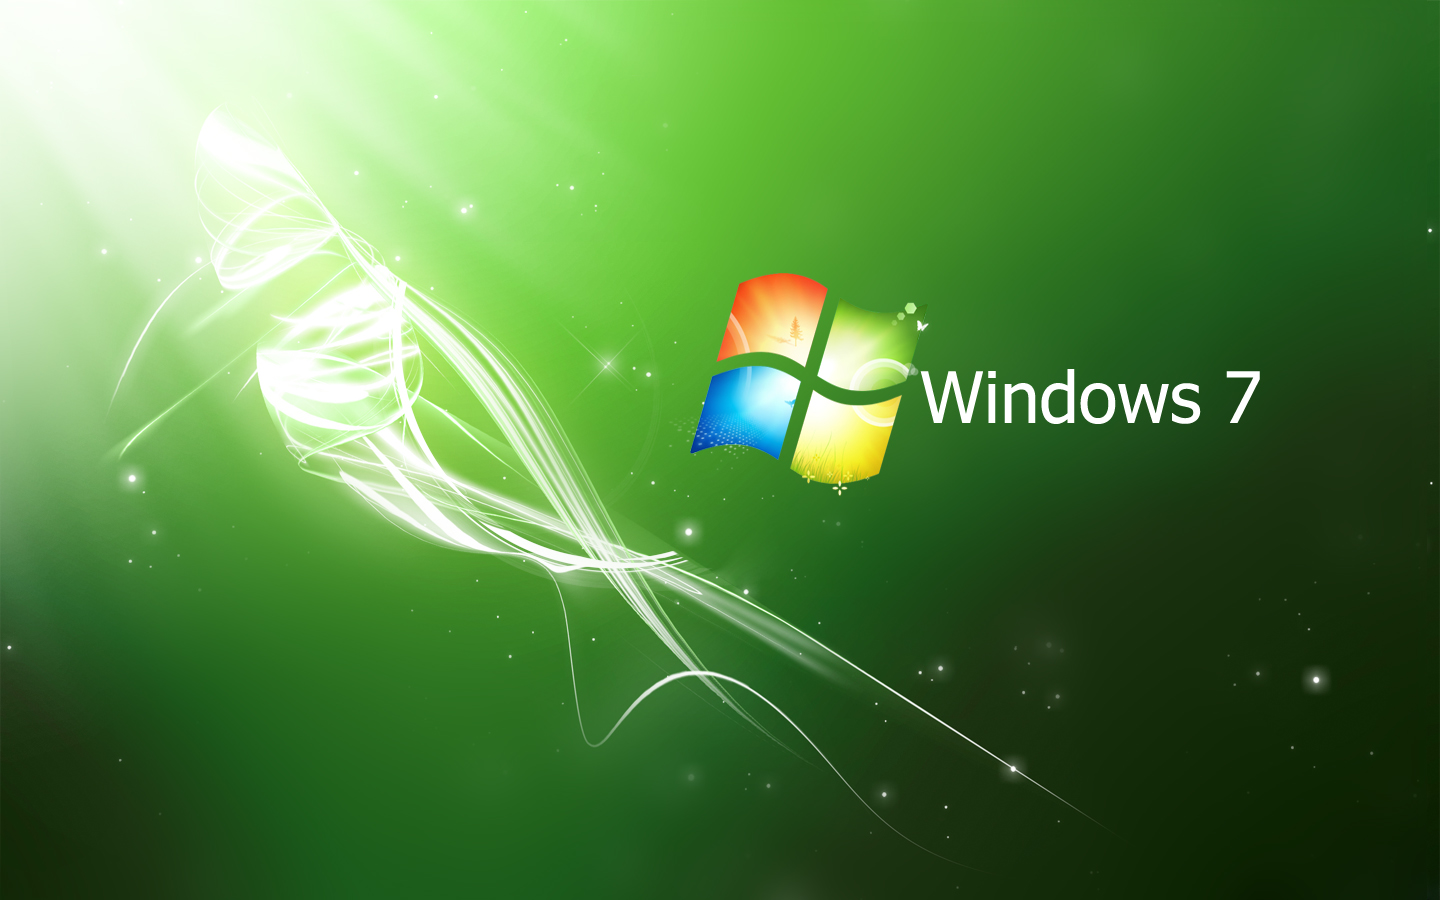 wallpaper Windows 7 Crystal Pack Blue   Green   Red HD 1440x900